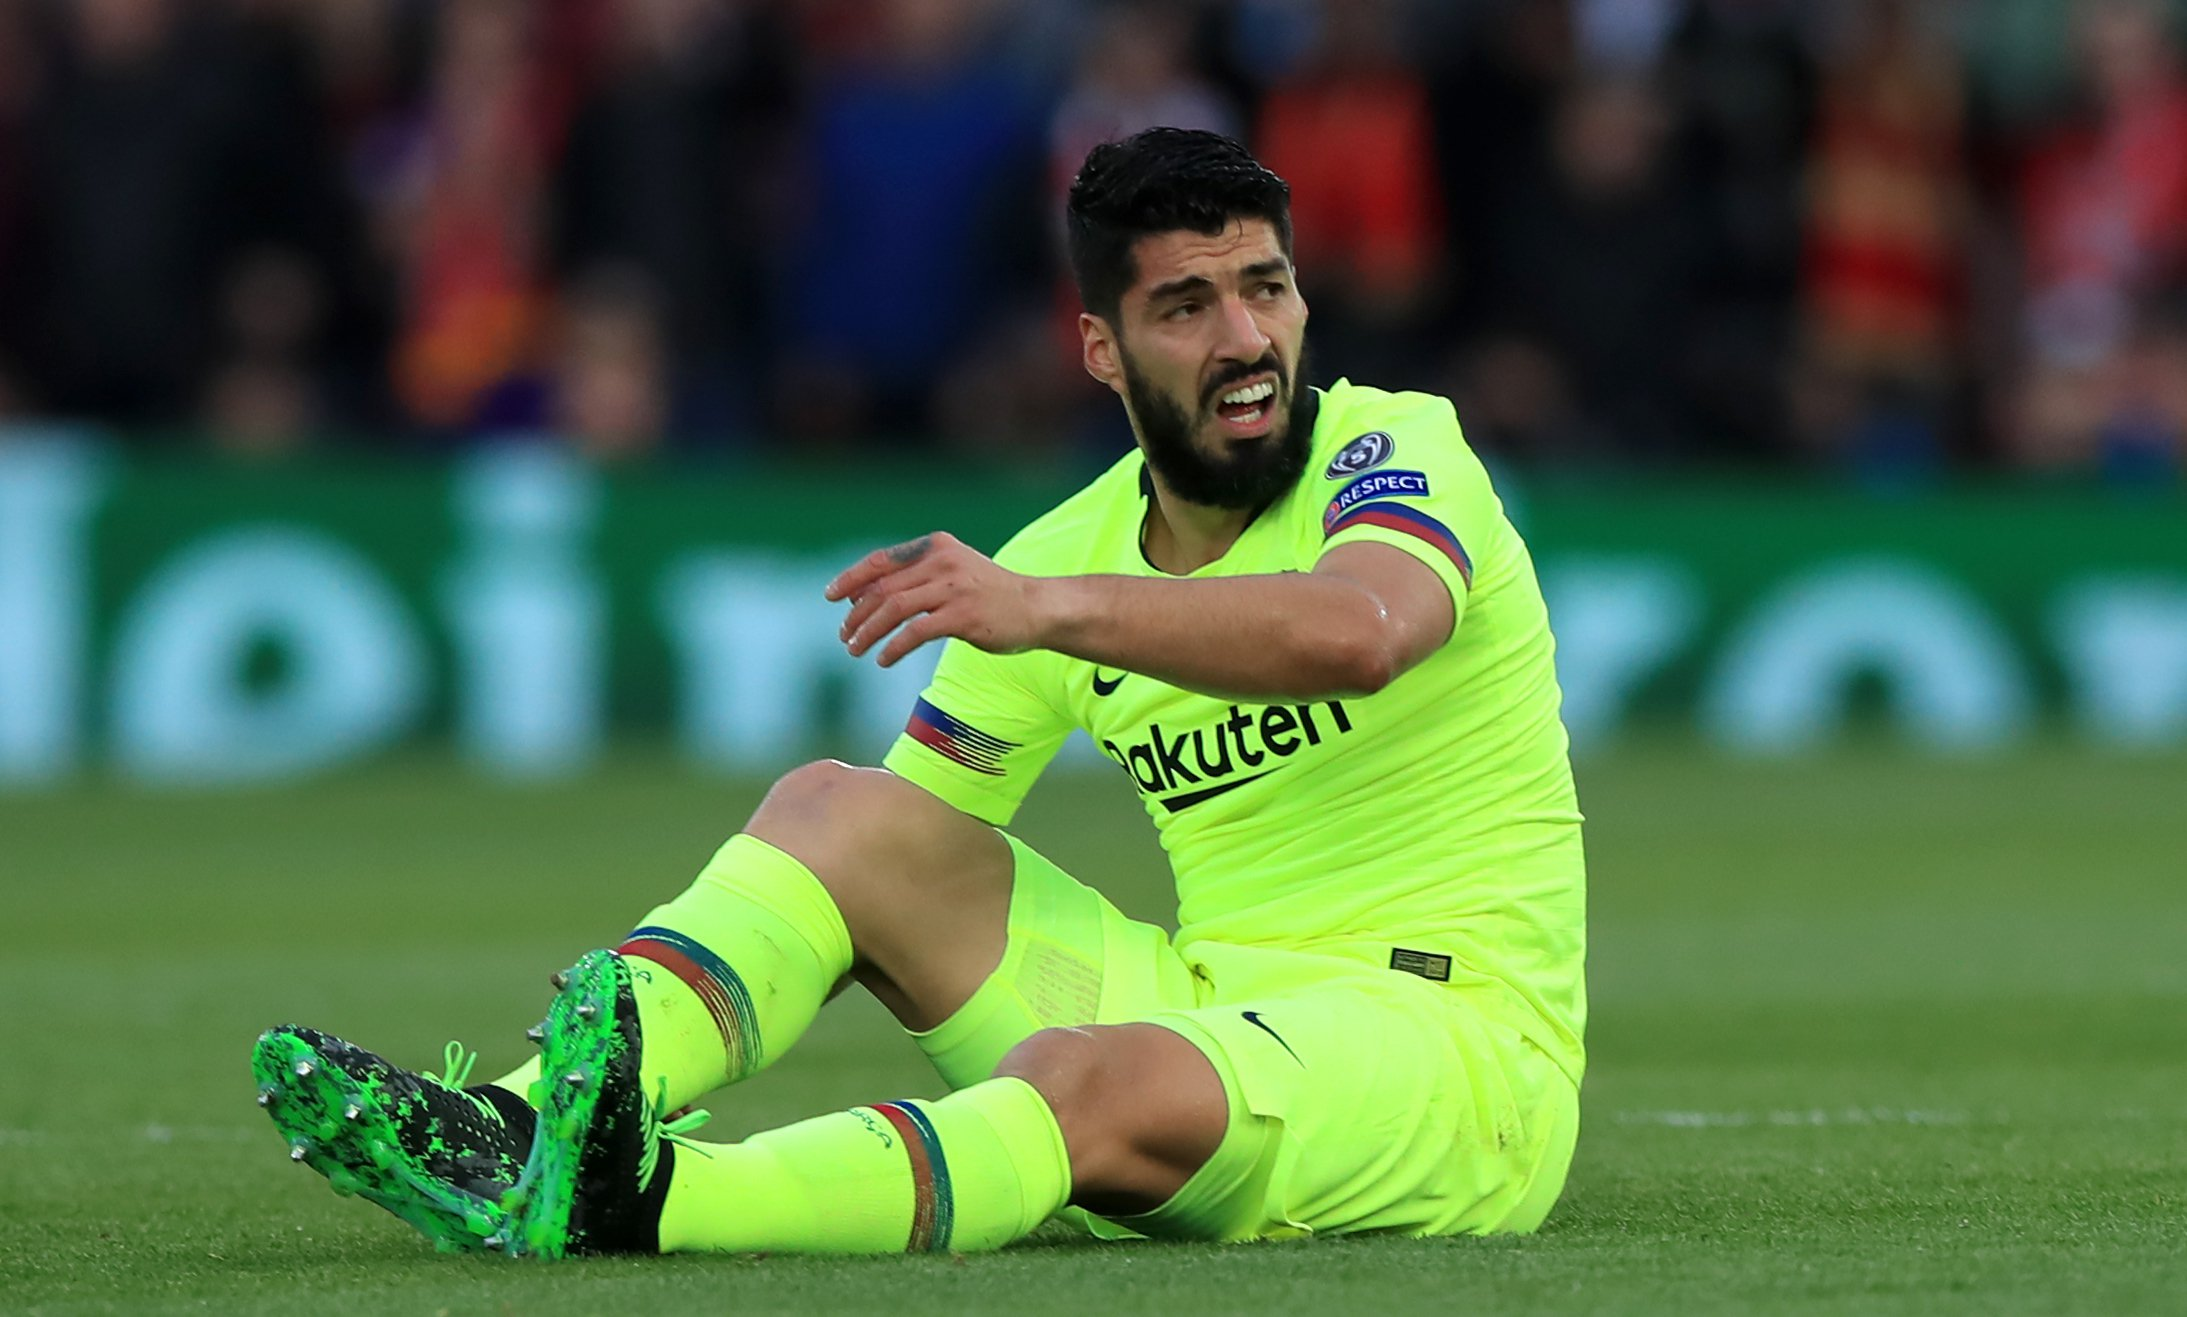 Liverpool fans chant 'f*** off, Suarez' and 'cheat' to Luis Suarez at Anfield during Barcelona clash